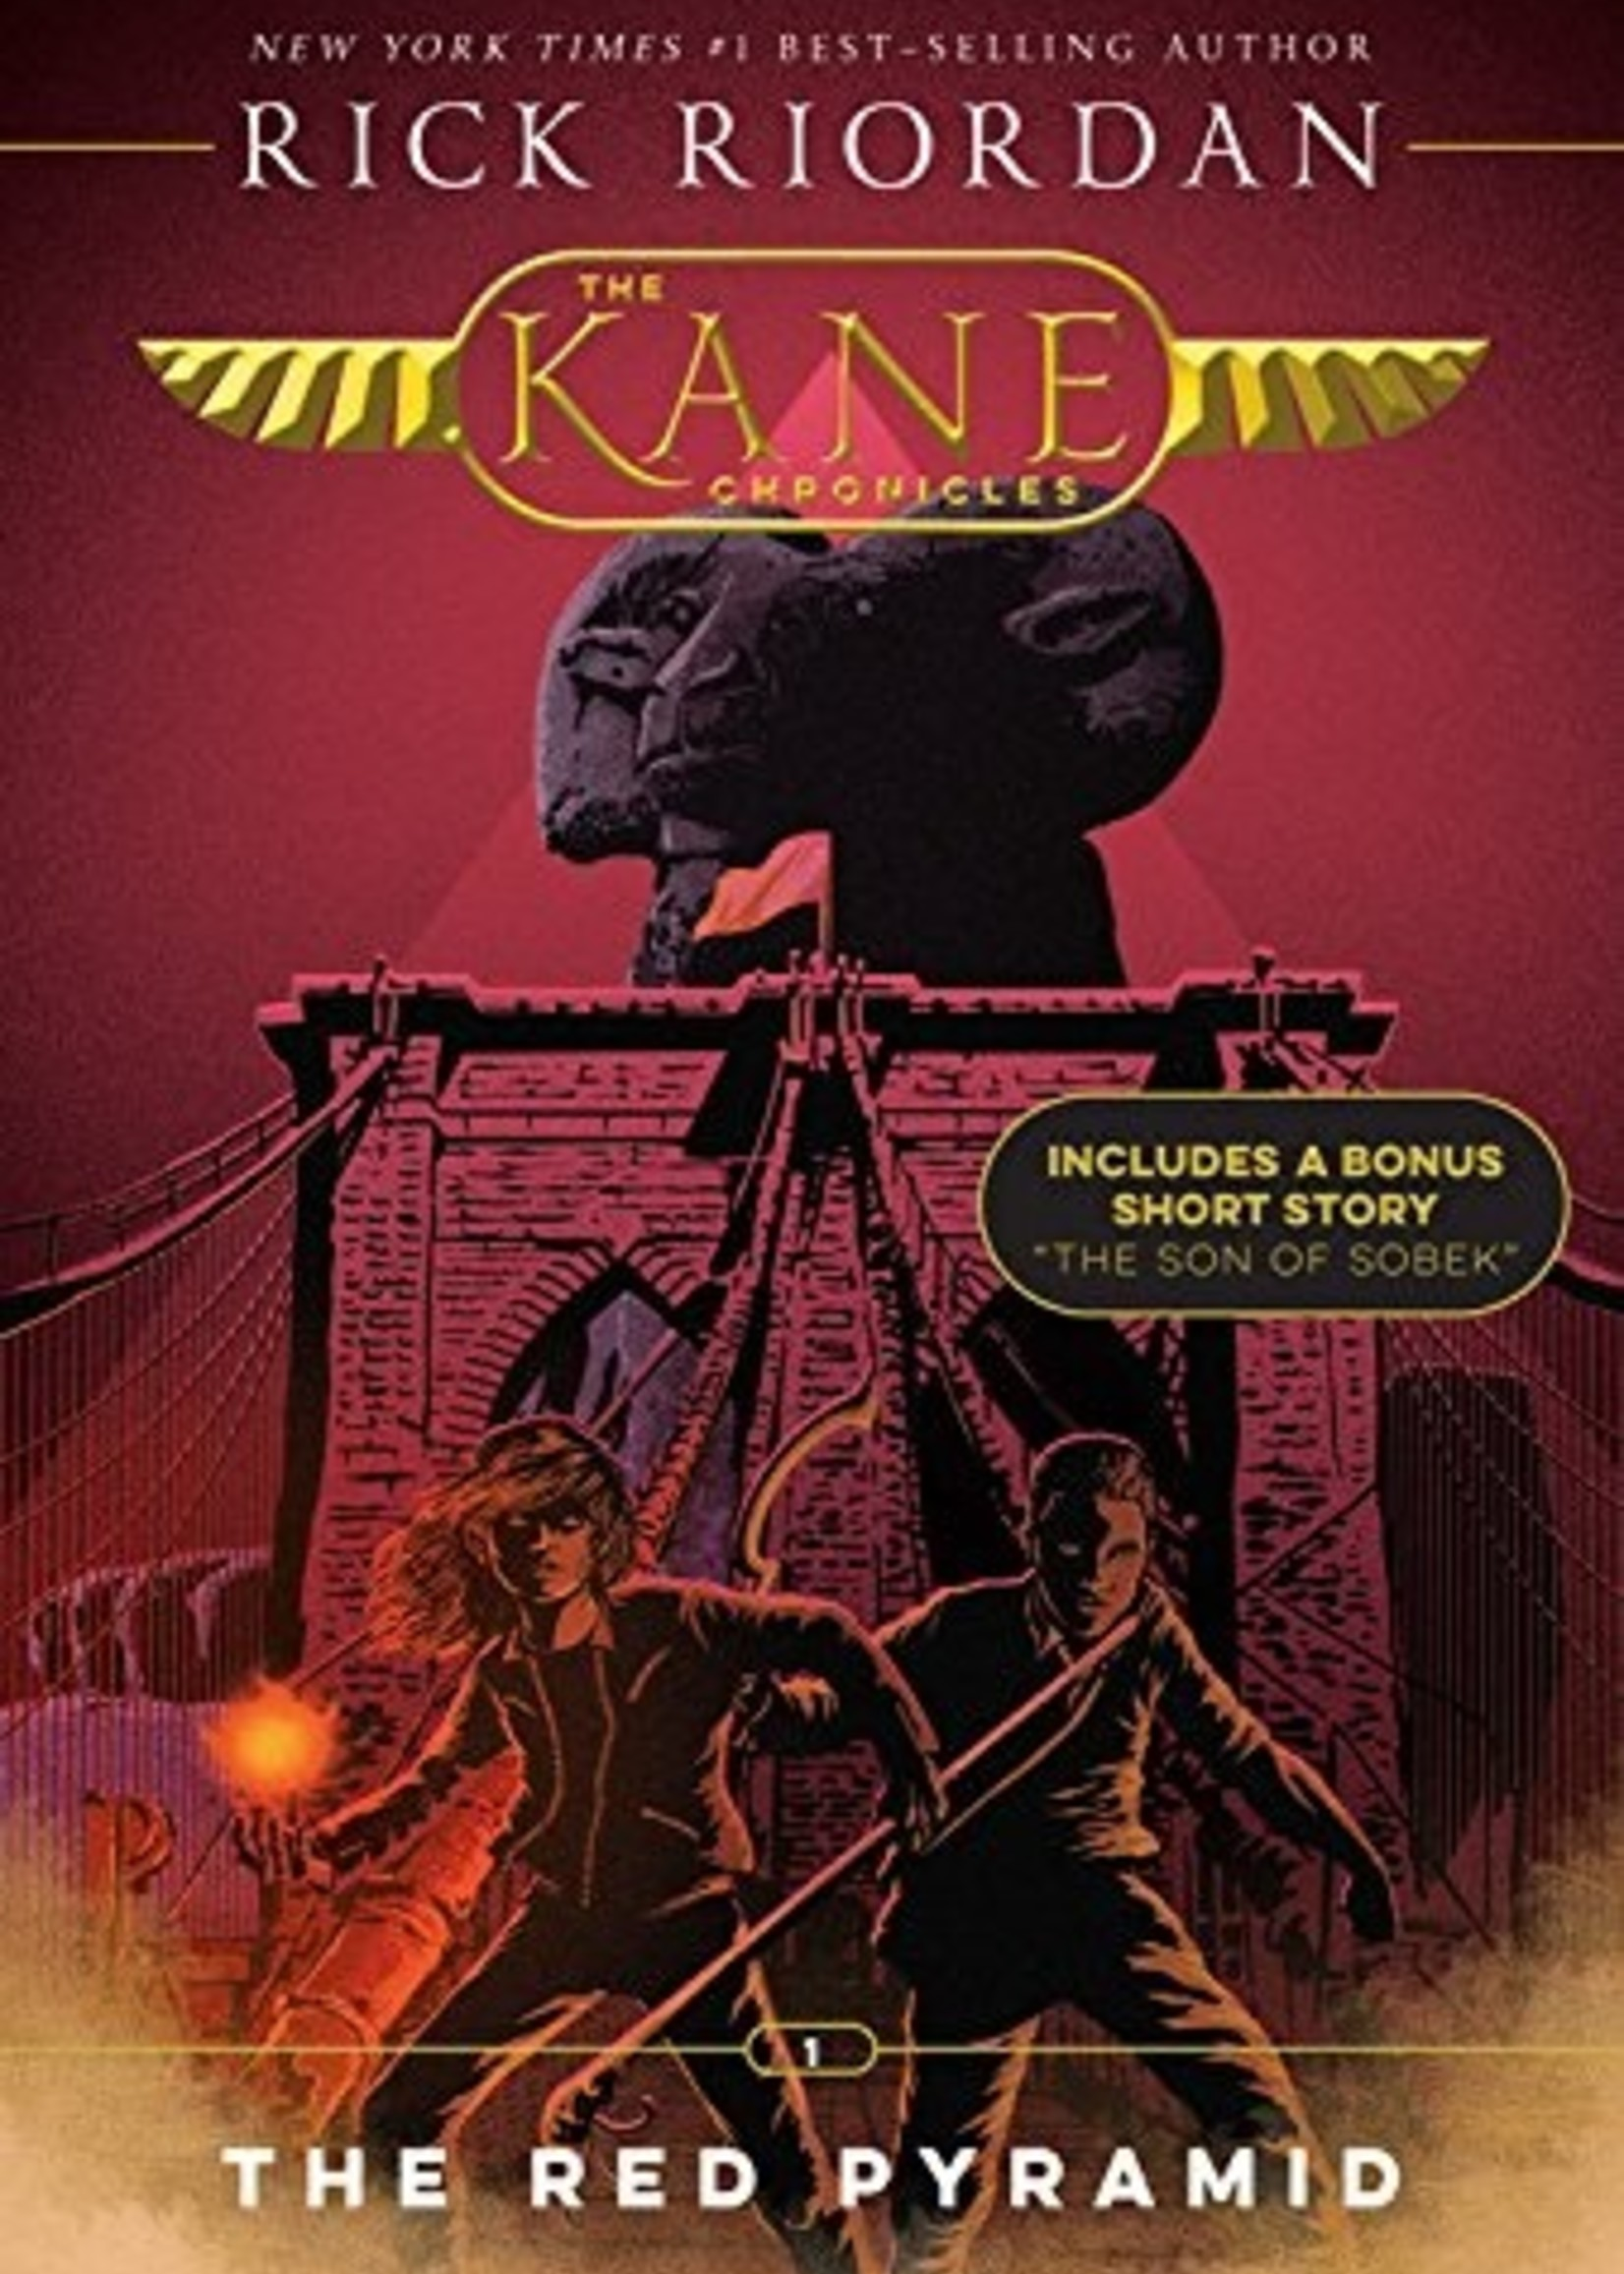 The Kane Chronicles #01, The Red Pyramid - Paperback